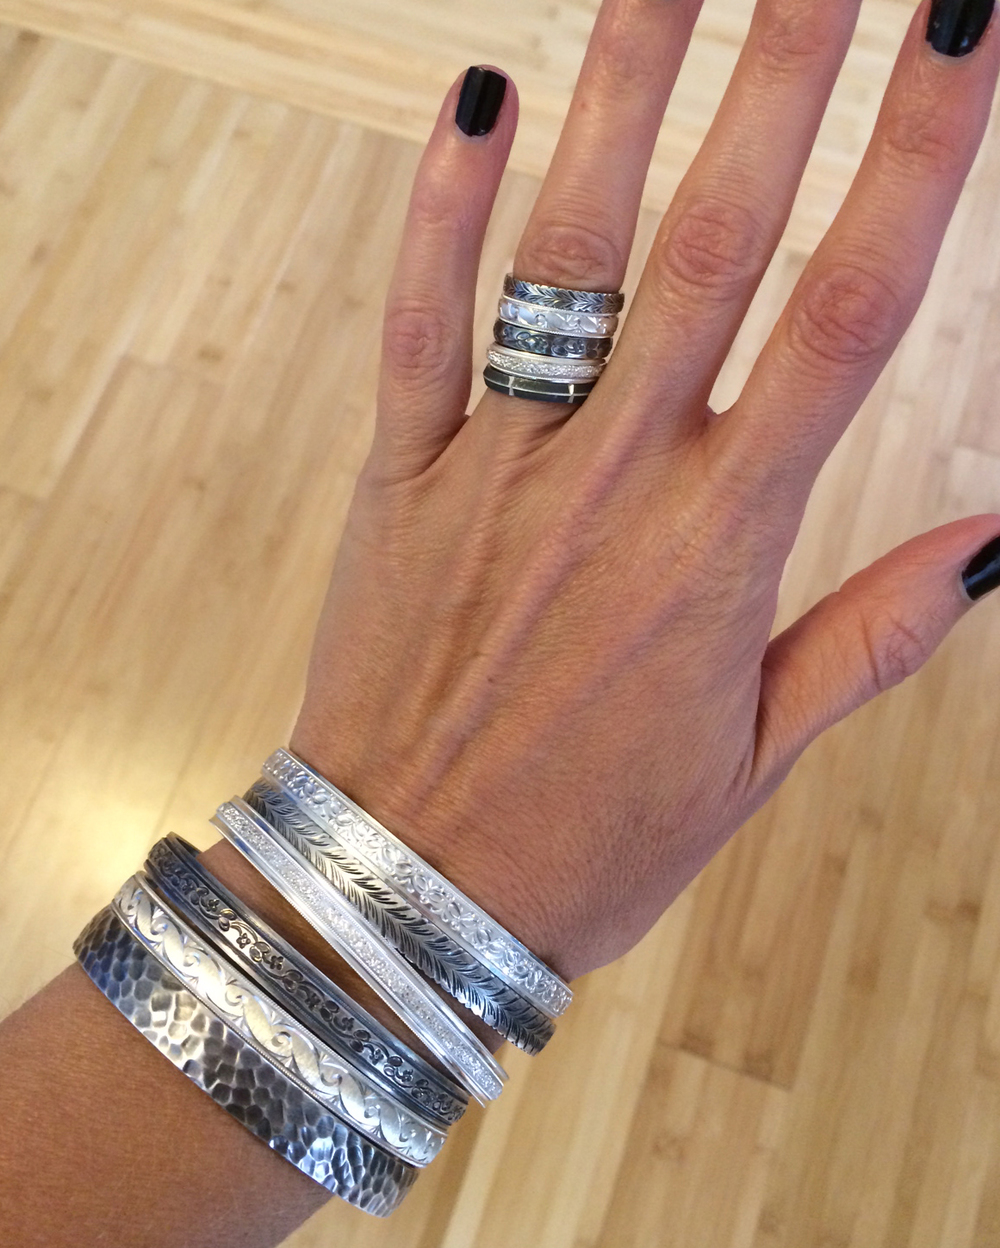 STACKED New York Argentium silver stackable bands (top to bottom): Prince, Lenox, Spring, Chrystie, and Market. STACKED New York Argentium silver stackable bangles (top to bottom): Mercer, Prince, Chrystie, Spring, Lenox, and Houston.